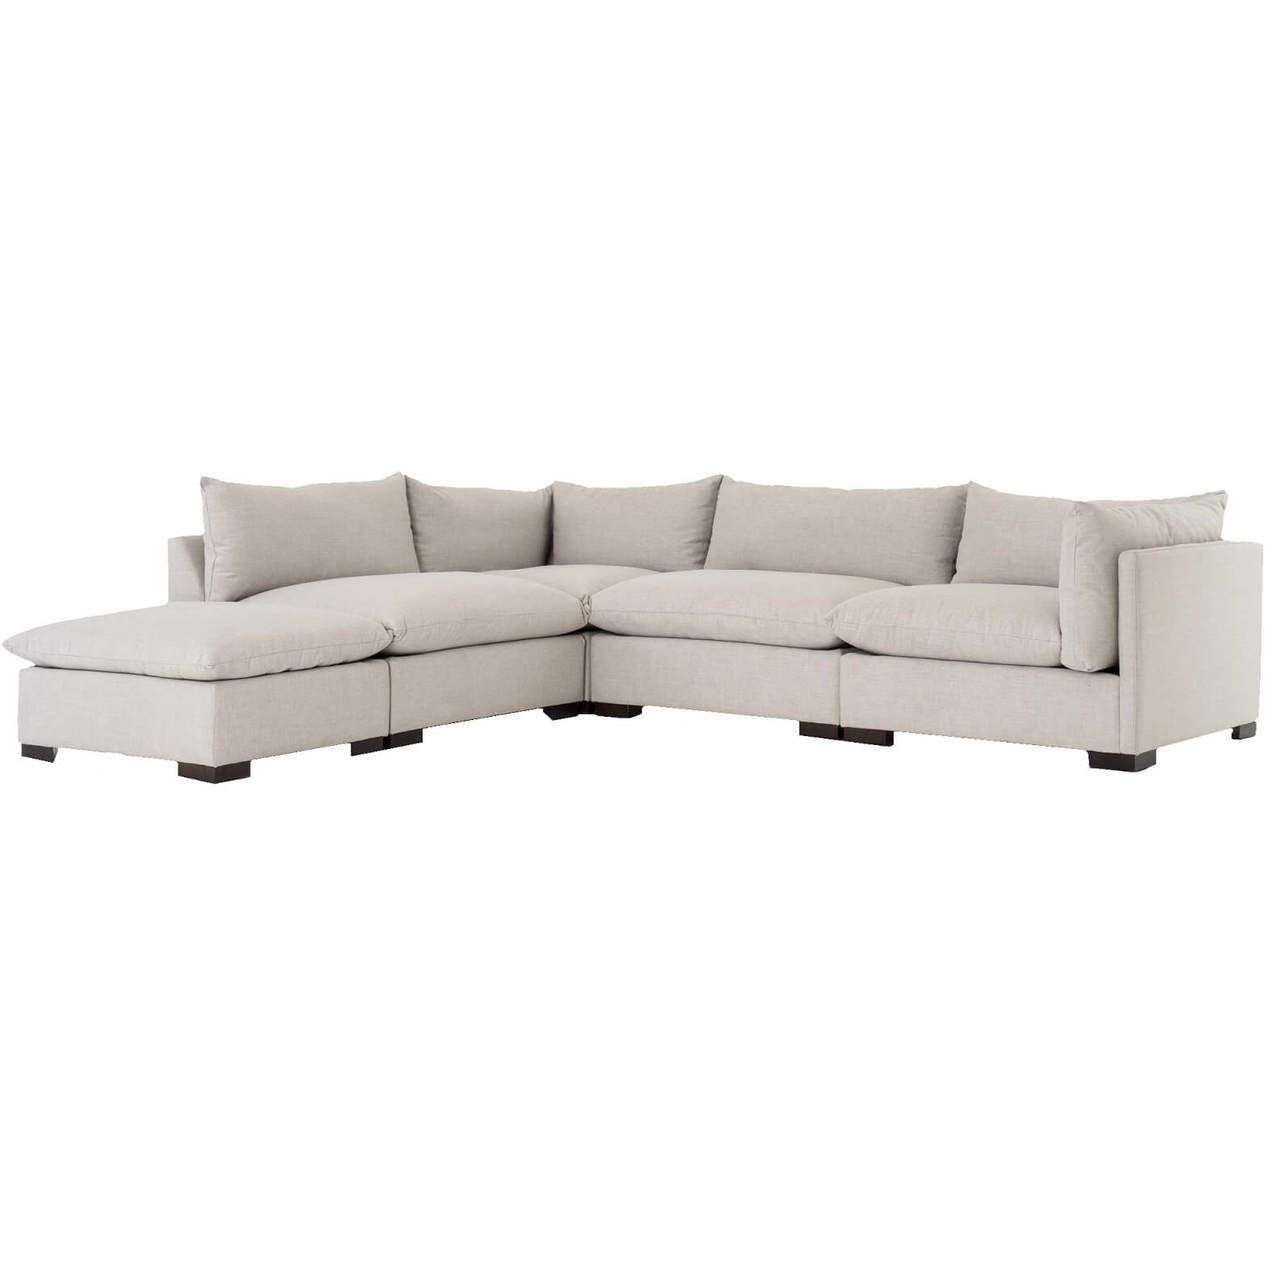 Westworld Modern Beige 5 Piece Modular Lounge Sectional Sofa